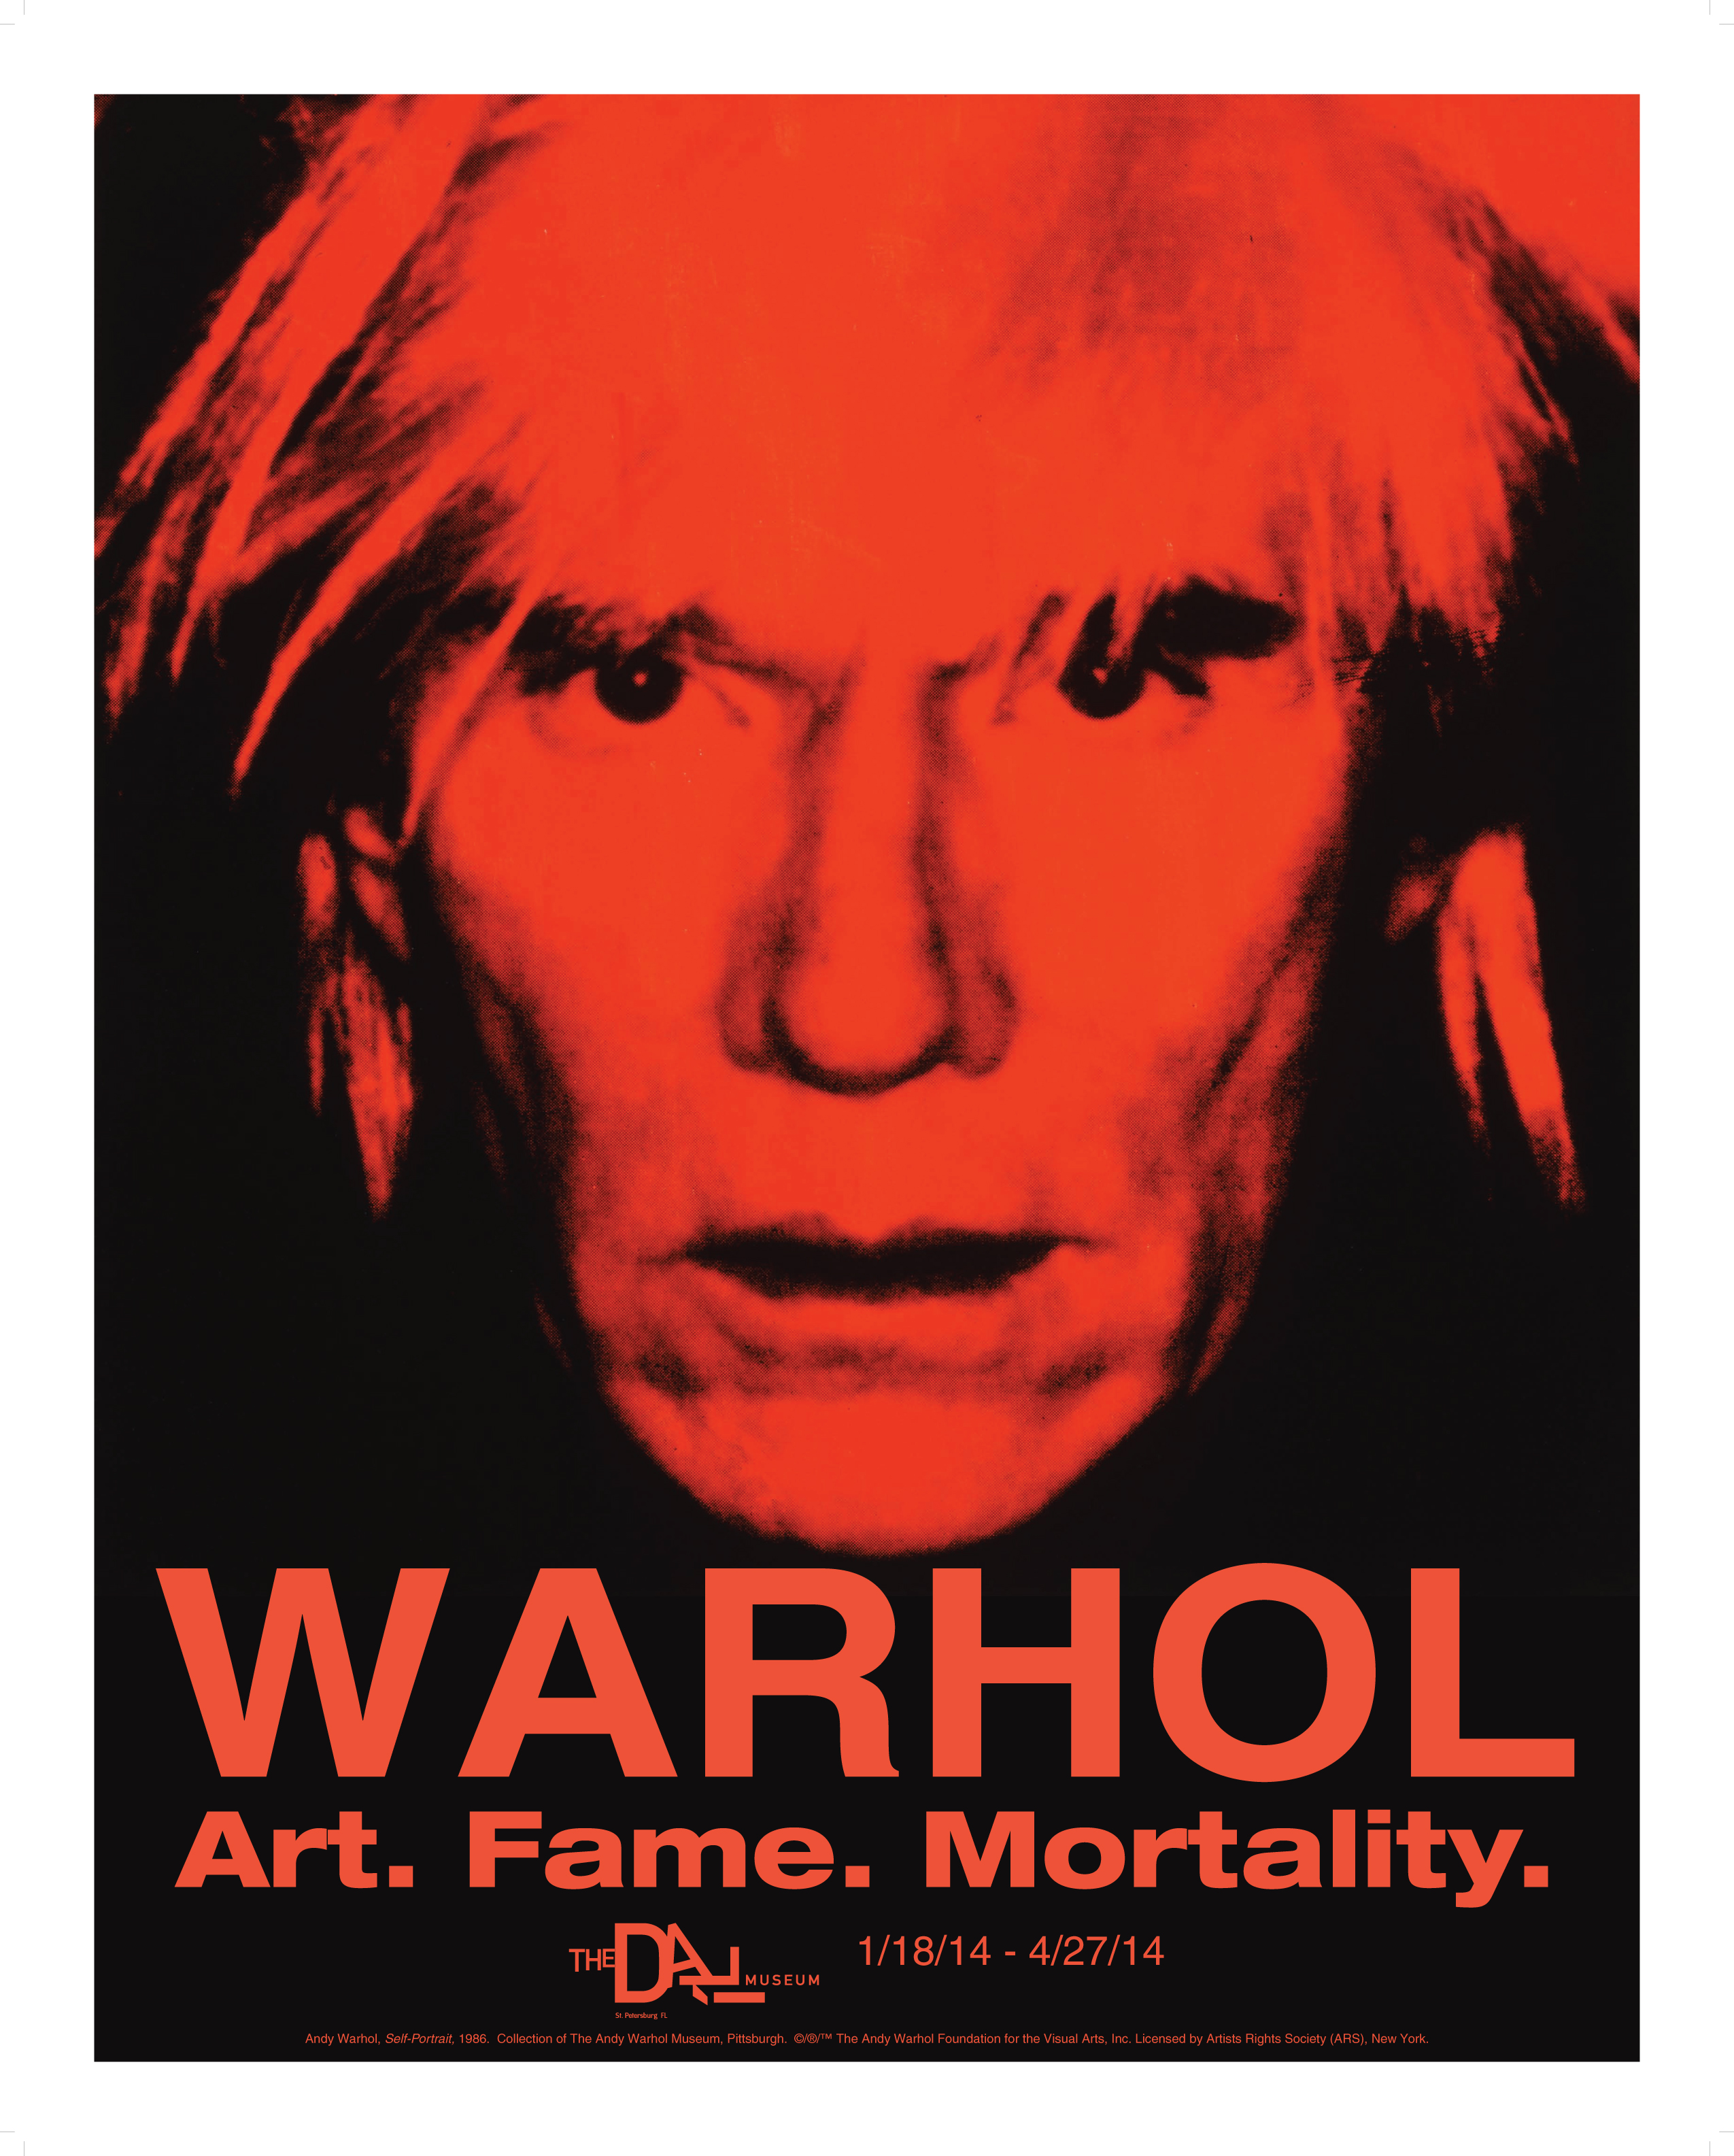 Warhol the flatness of fame